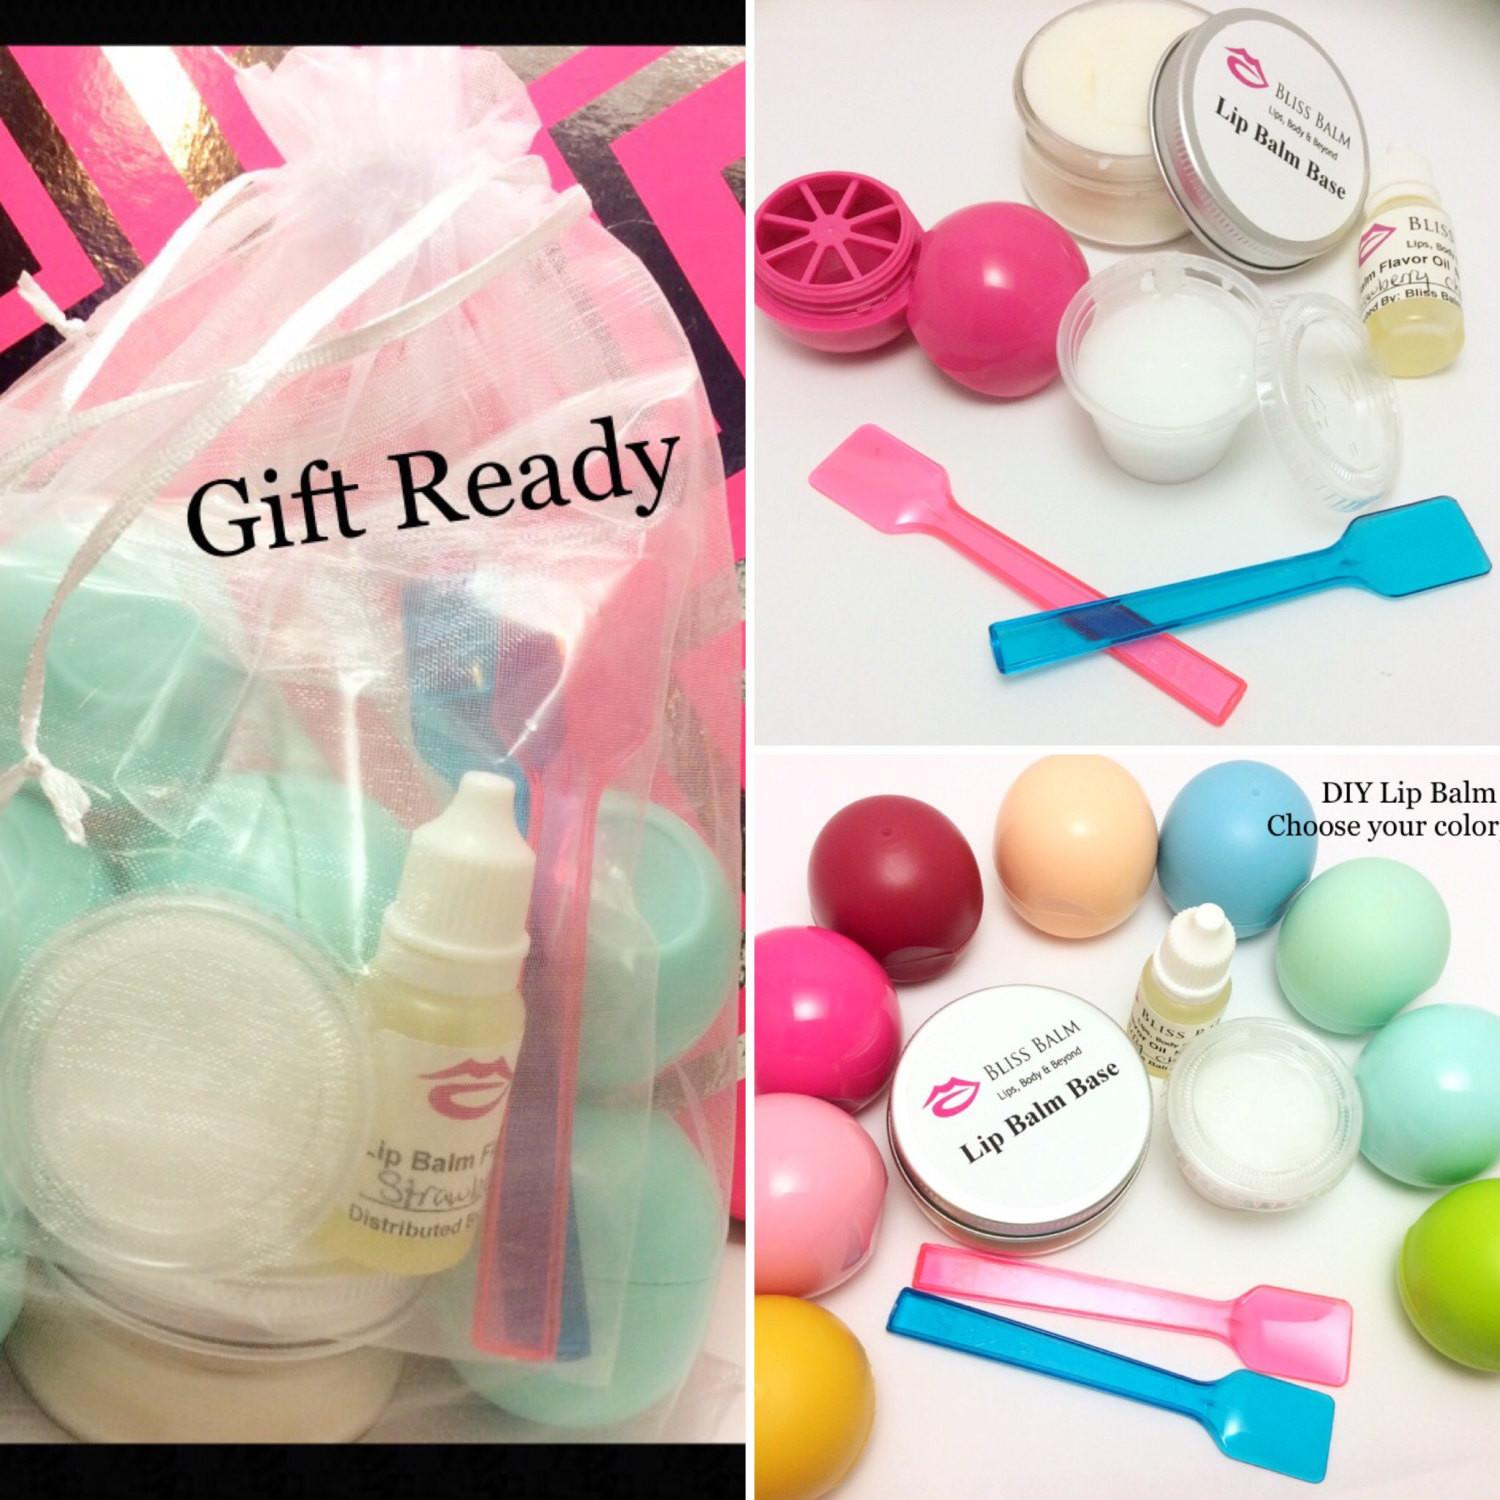 Diy Lip Balm Kit Choose Your Color Flavor Lipbalm